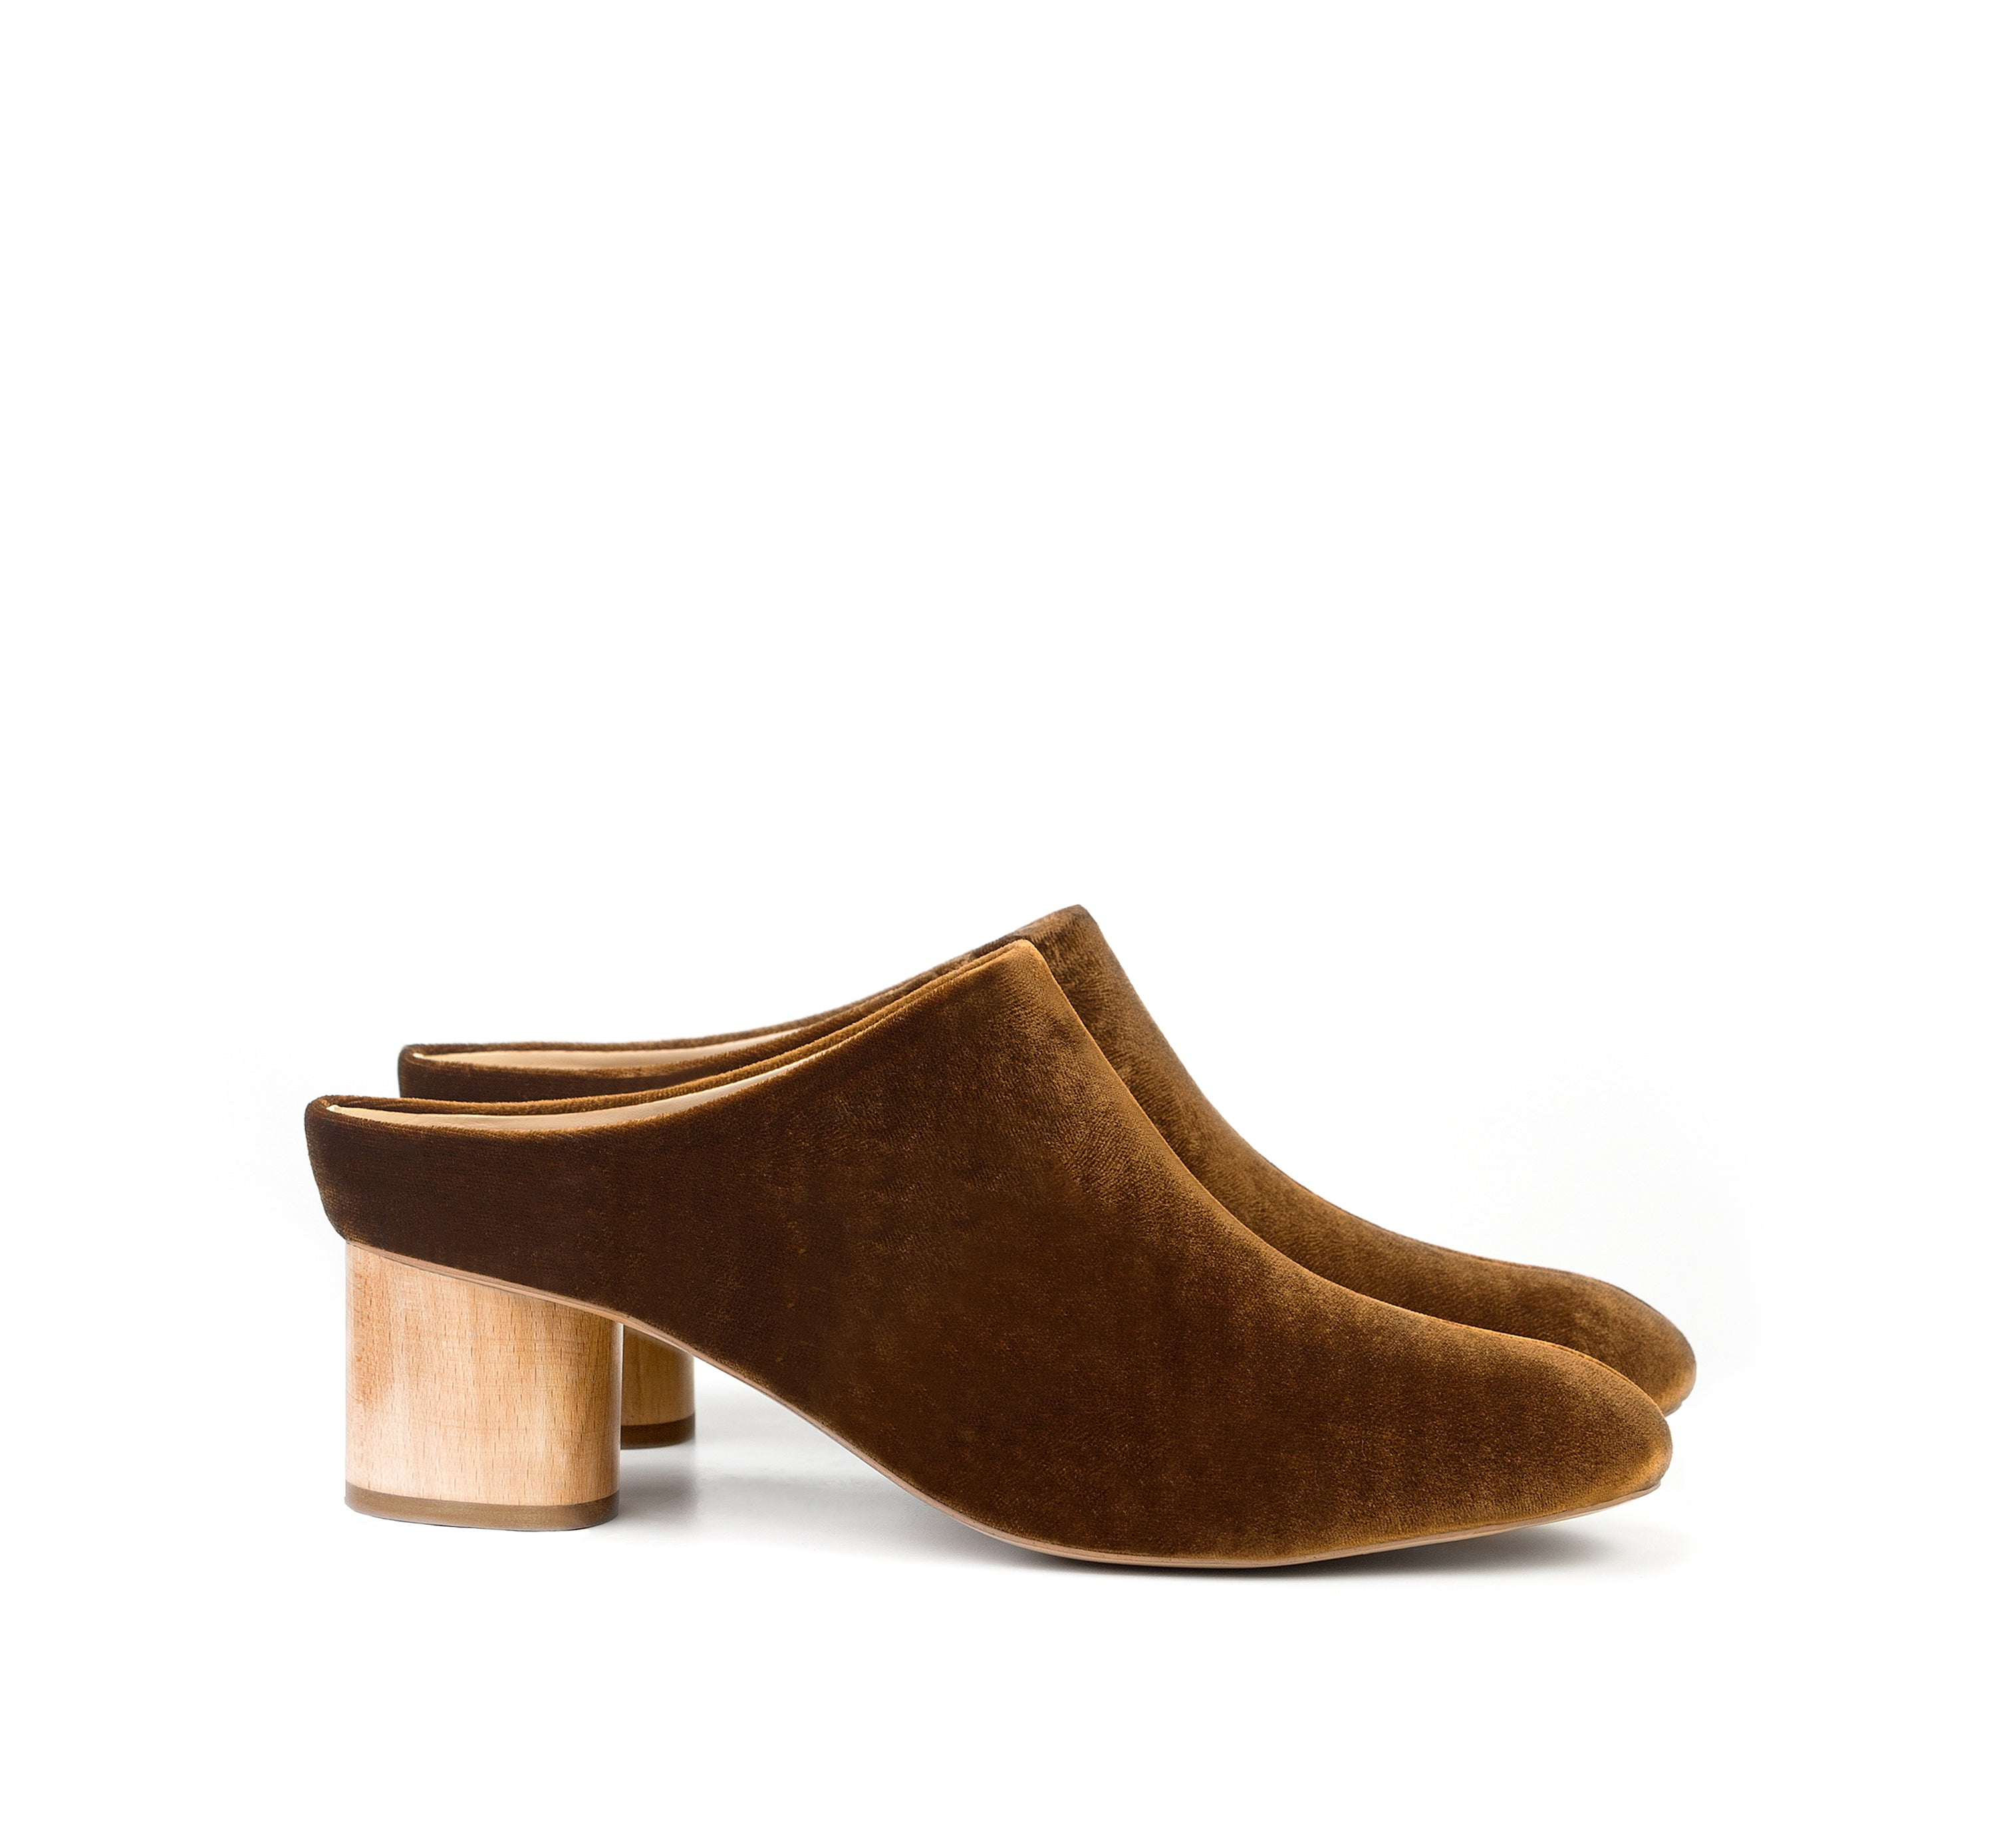 Low Mule in Amber Velvet for Autumn Winter. Vegan Friendly heels for women. Sustainable, Cruelty free, Ethically handmade in Portugal.